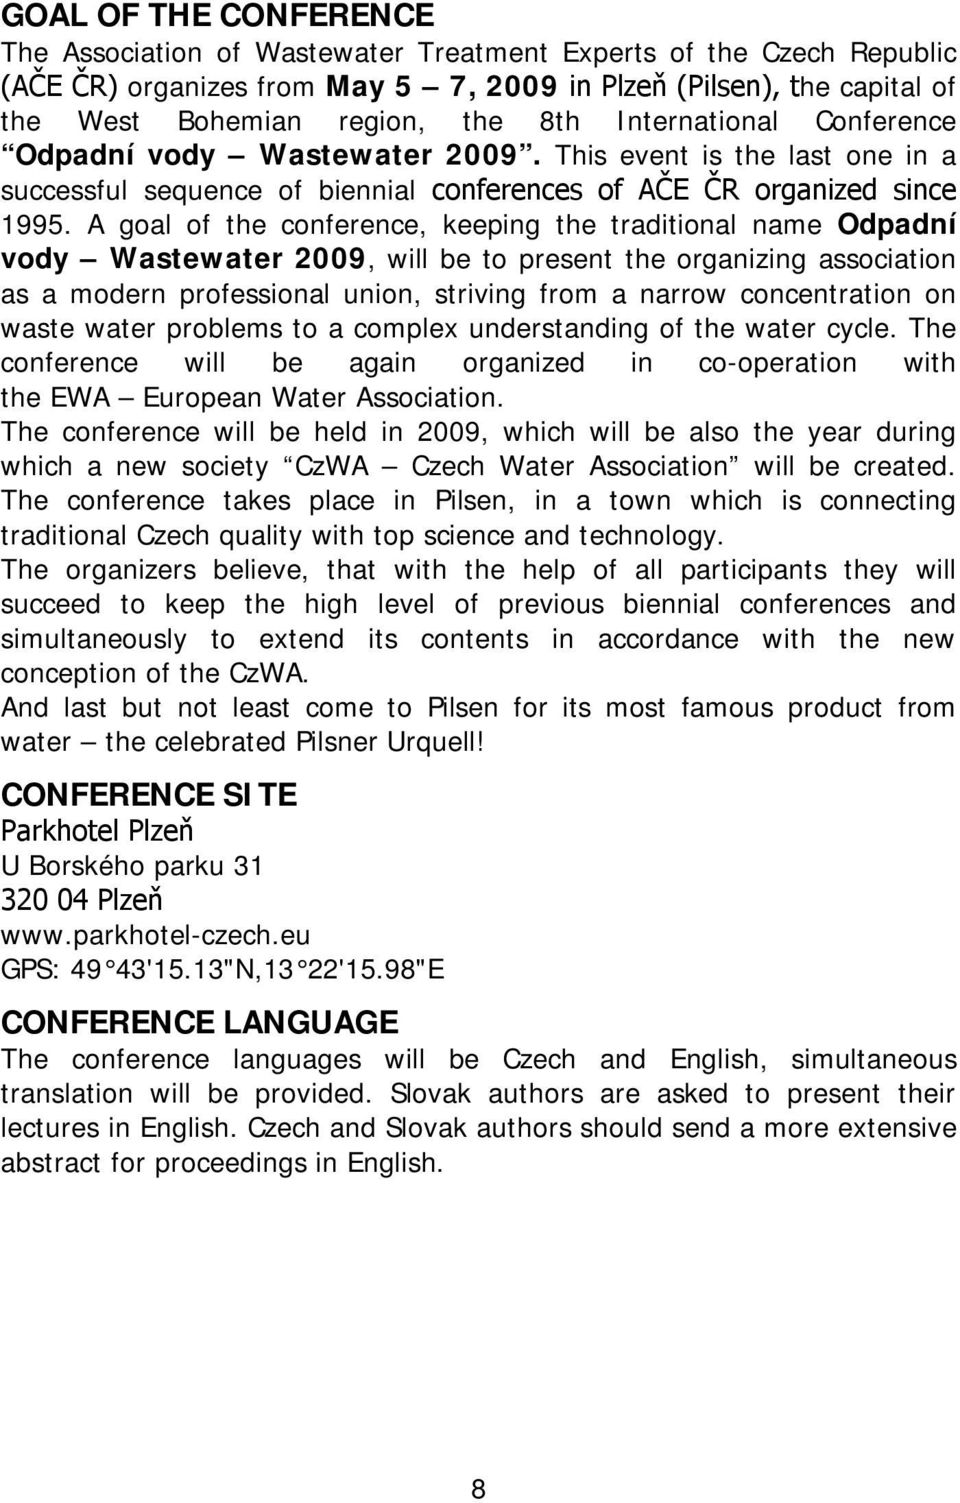 A goal of the conference, keeping the traditional name Odpadní vody Wastewater 2009, will be to present the organizing association as a modern professional union, striving from a narrow concentration